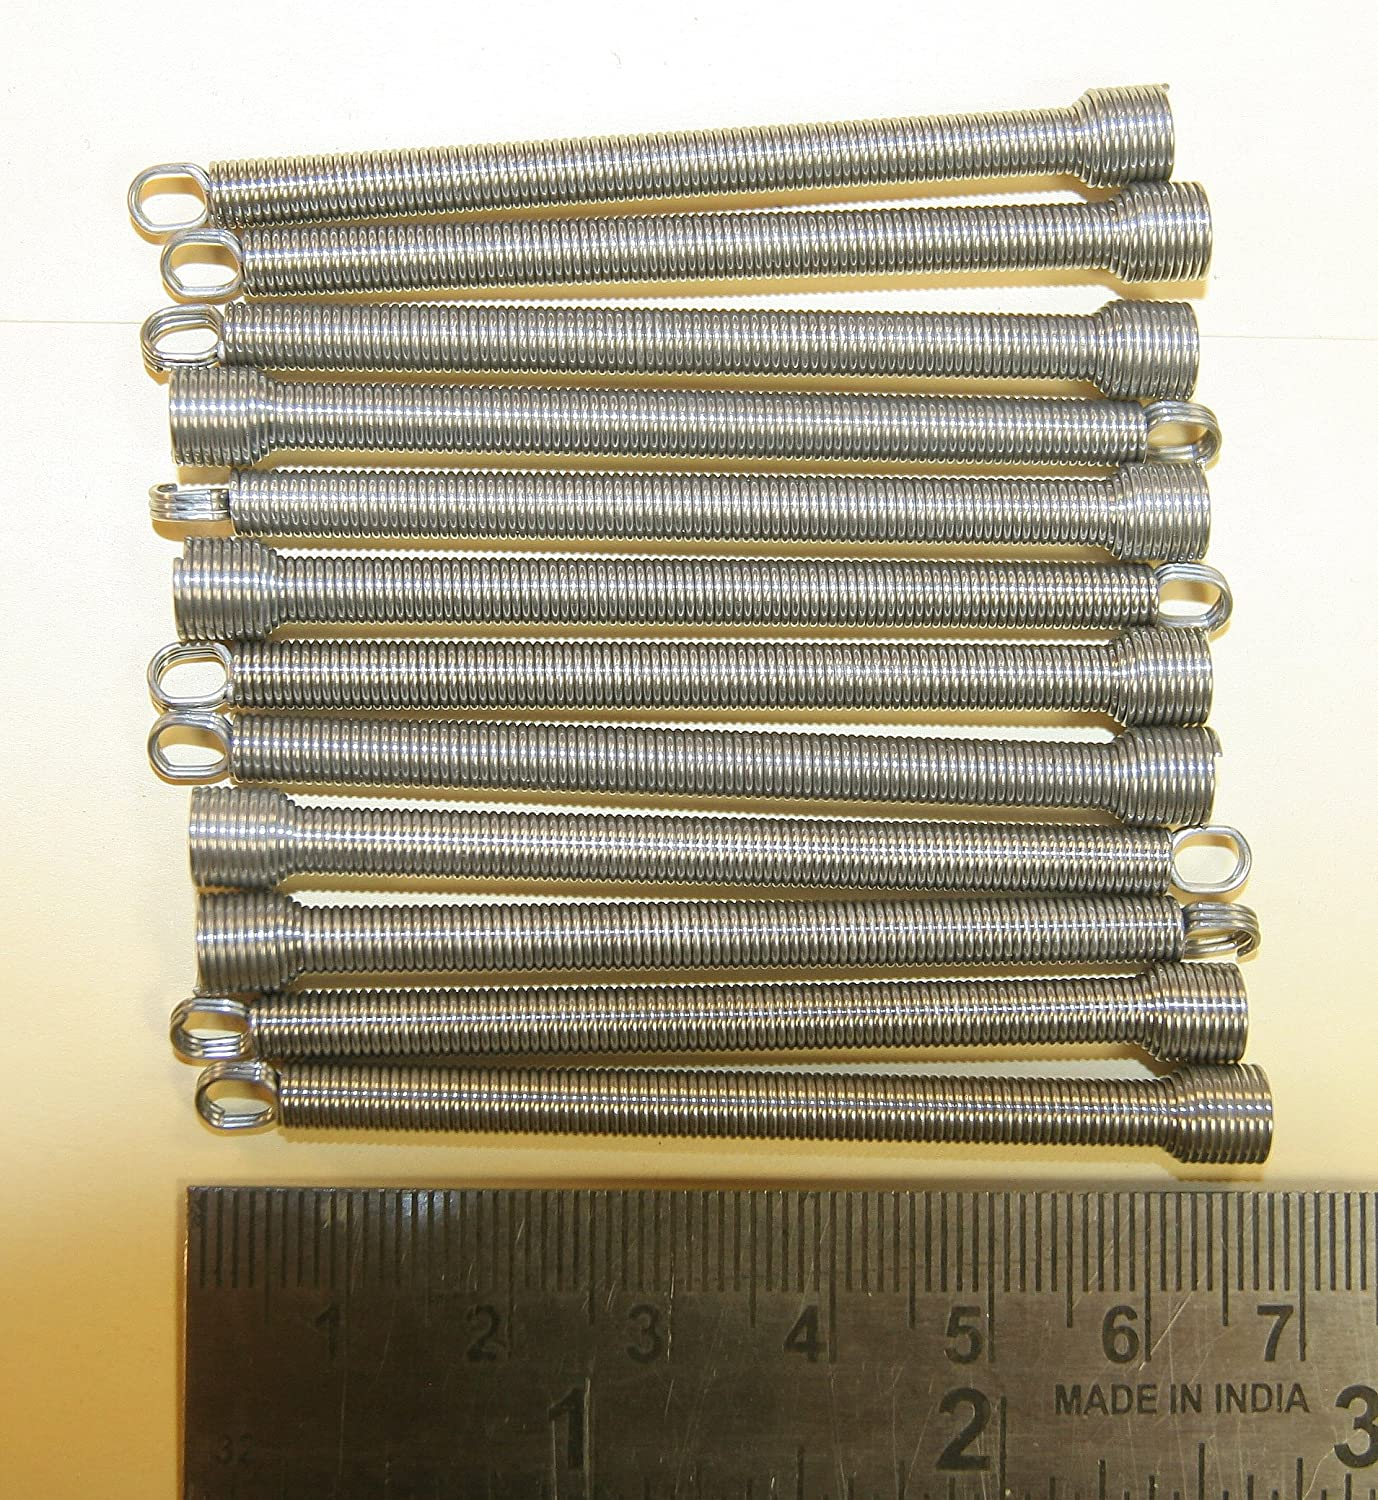 part  20963 ESD coin chute return spring replacements 4 for 1 price qty